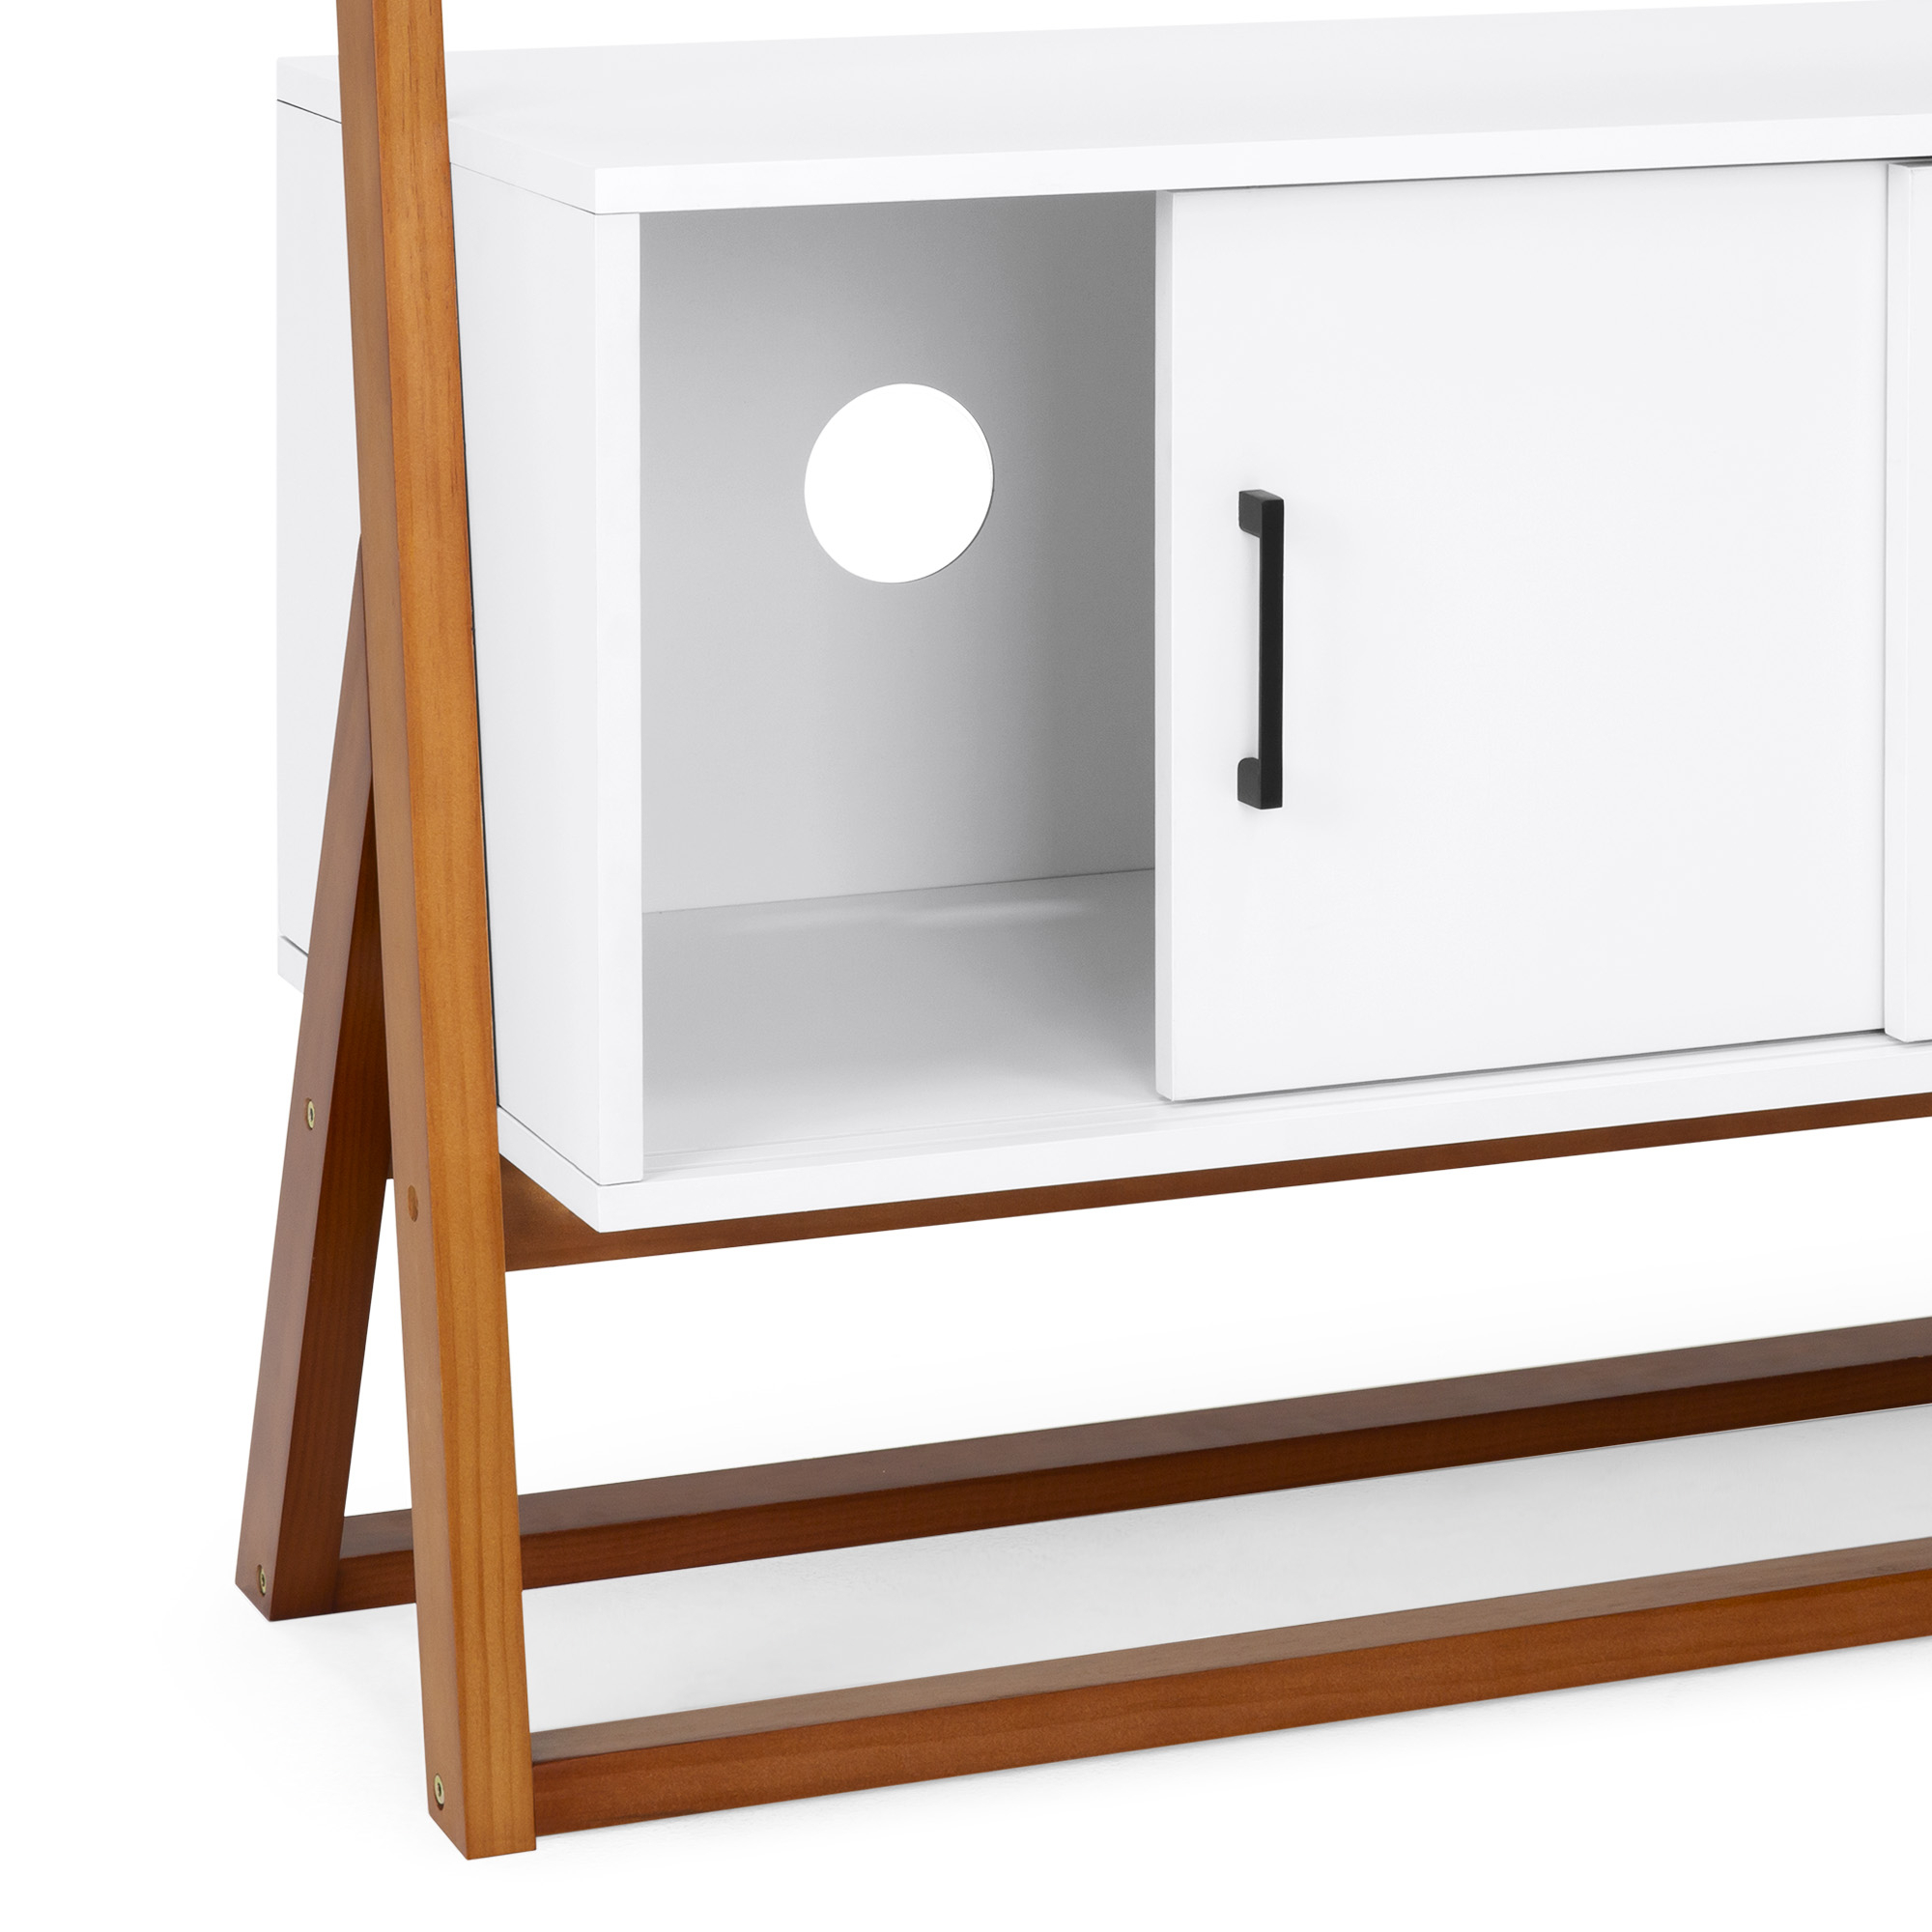 Bcp 42in Ladder Shelf Tv Stand W/ Cabinet – White With Regard To Tiva White Ladder Tv Stands (View 8 of 20)